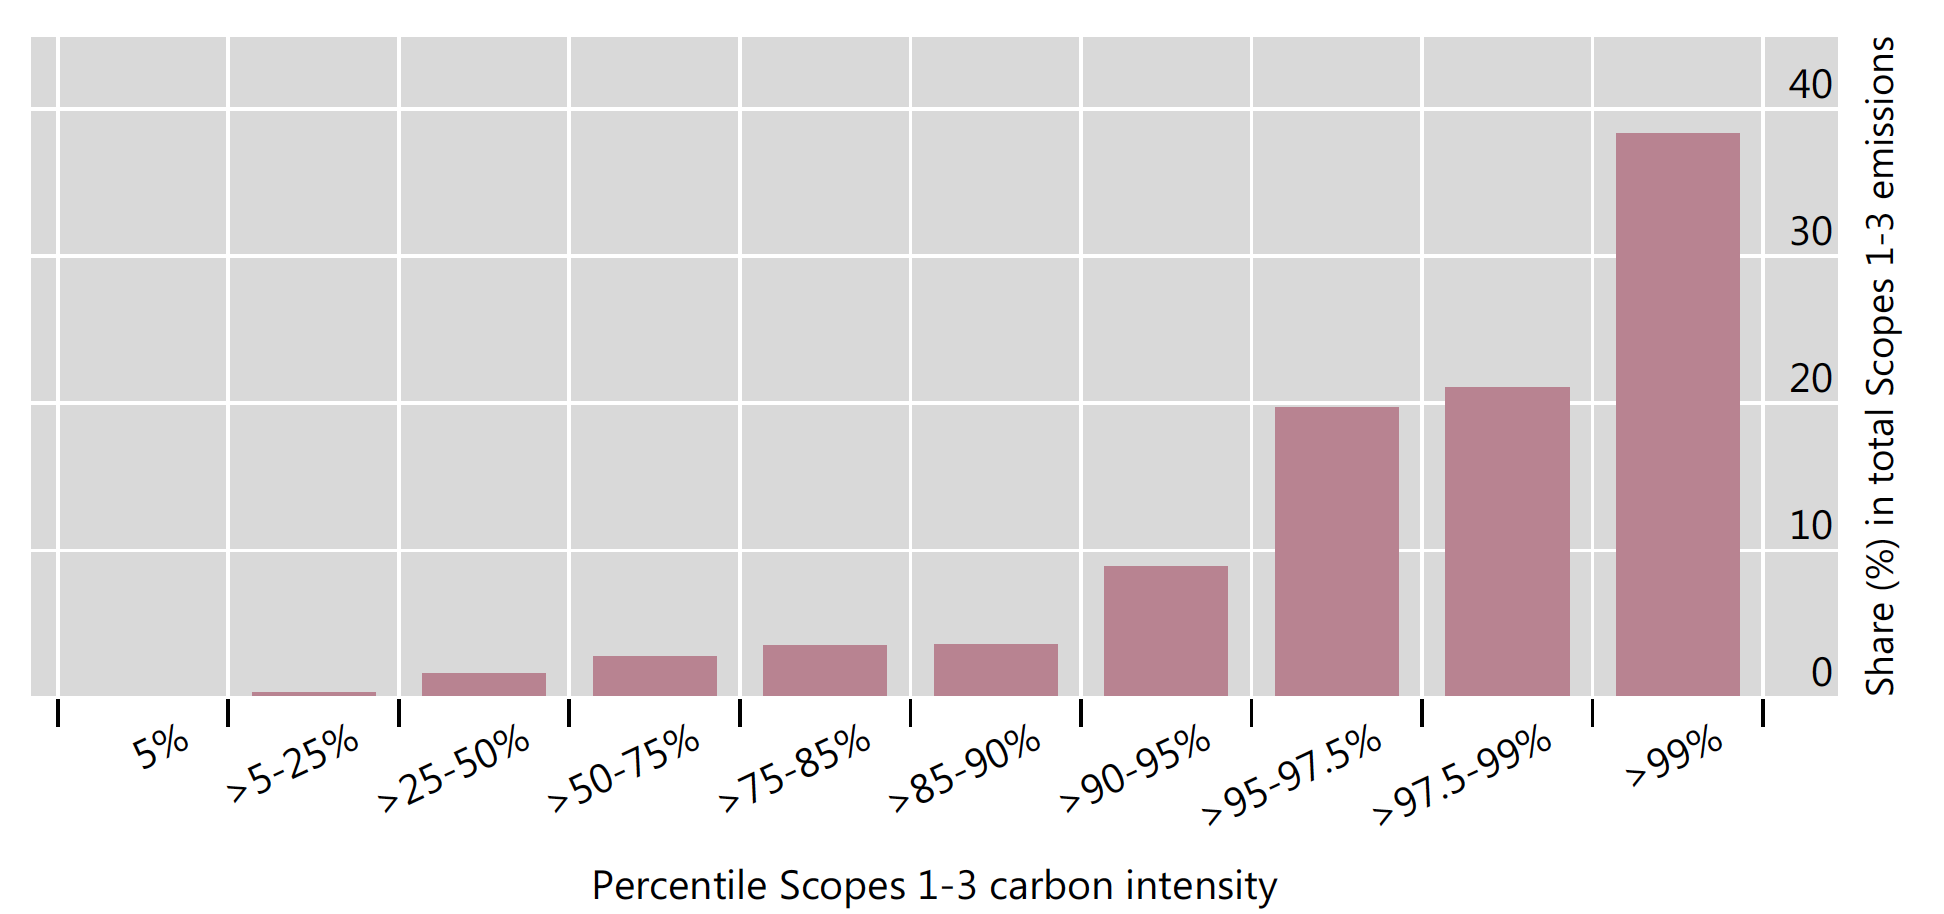 Green bonds and carbon emissions: Exploring the case for a rating system at the firm level 3